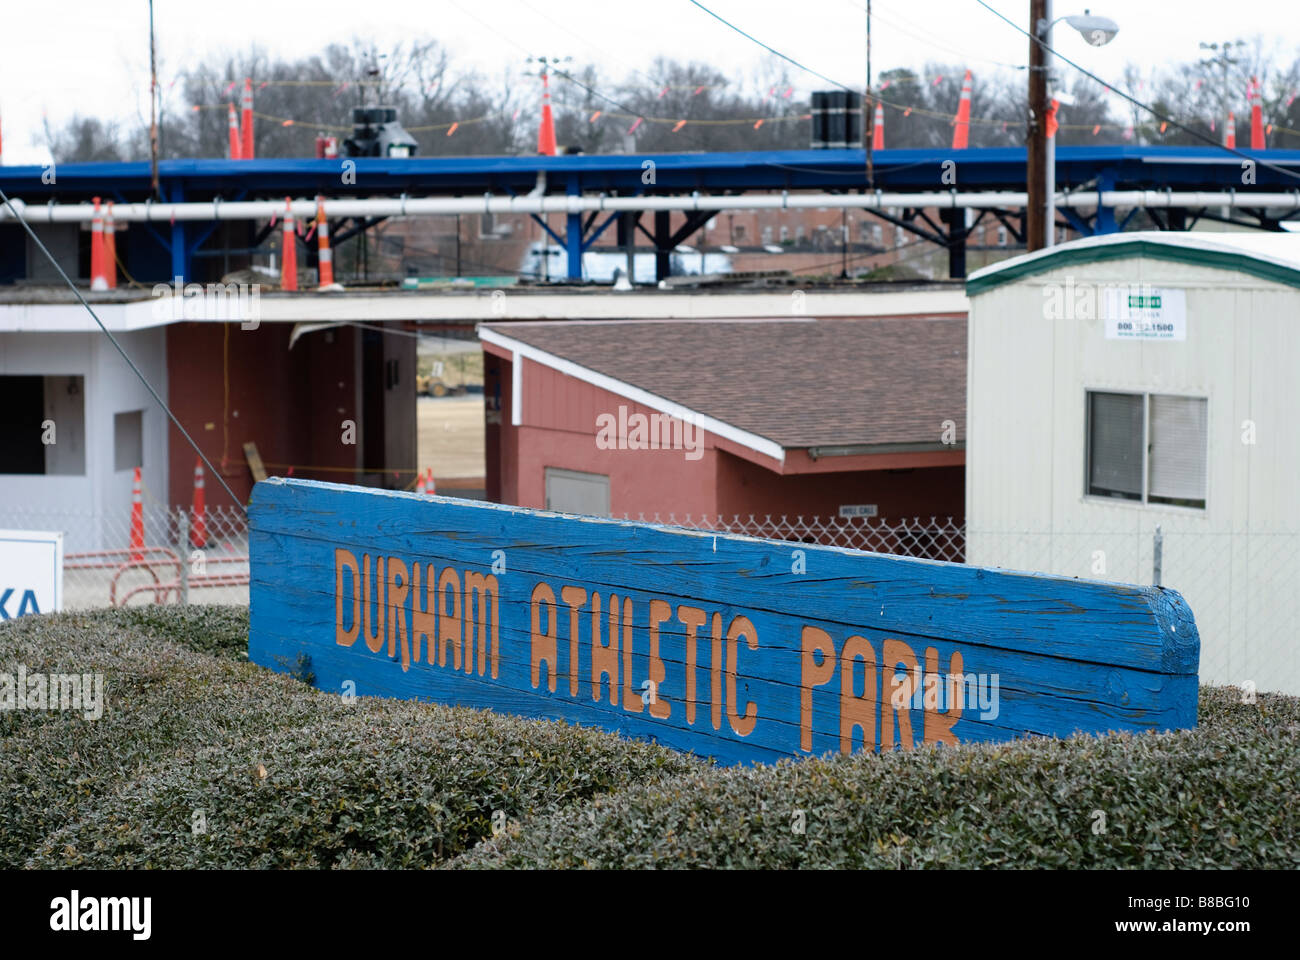 Durham Athletic Park former stadium of the Durham Bulls Baseball team - Stock Image